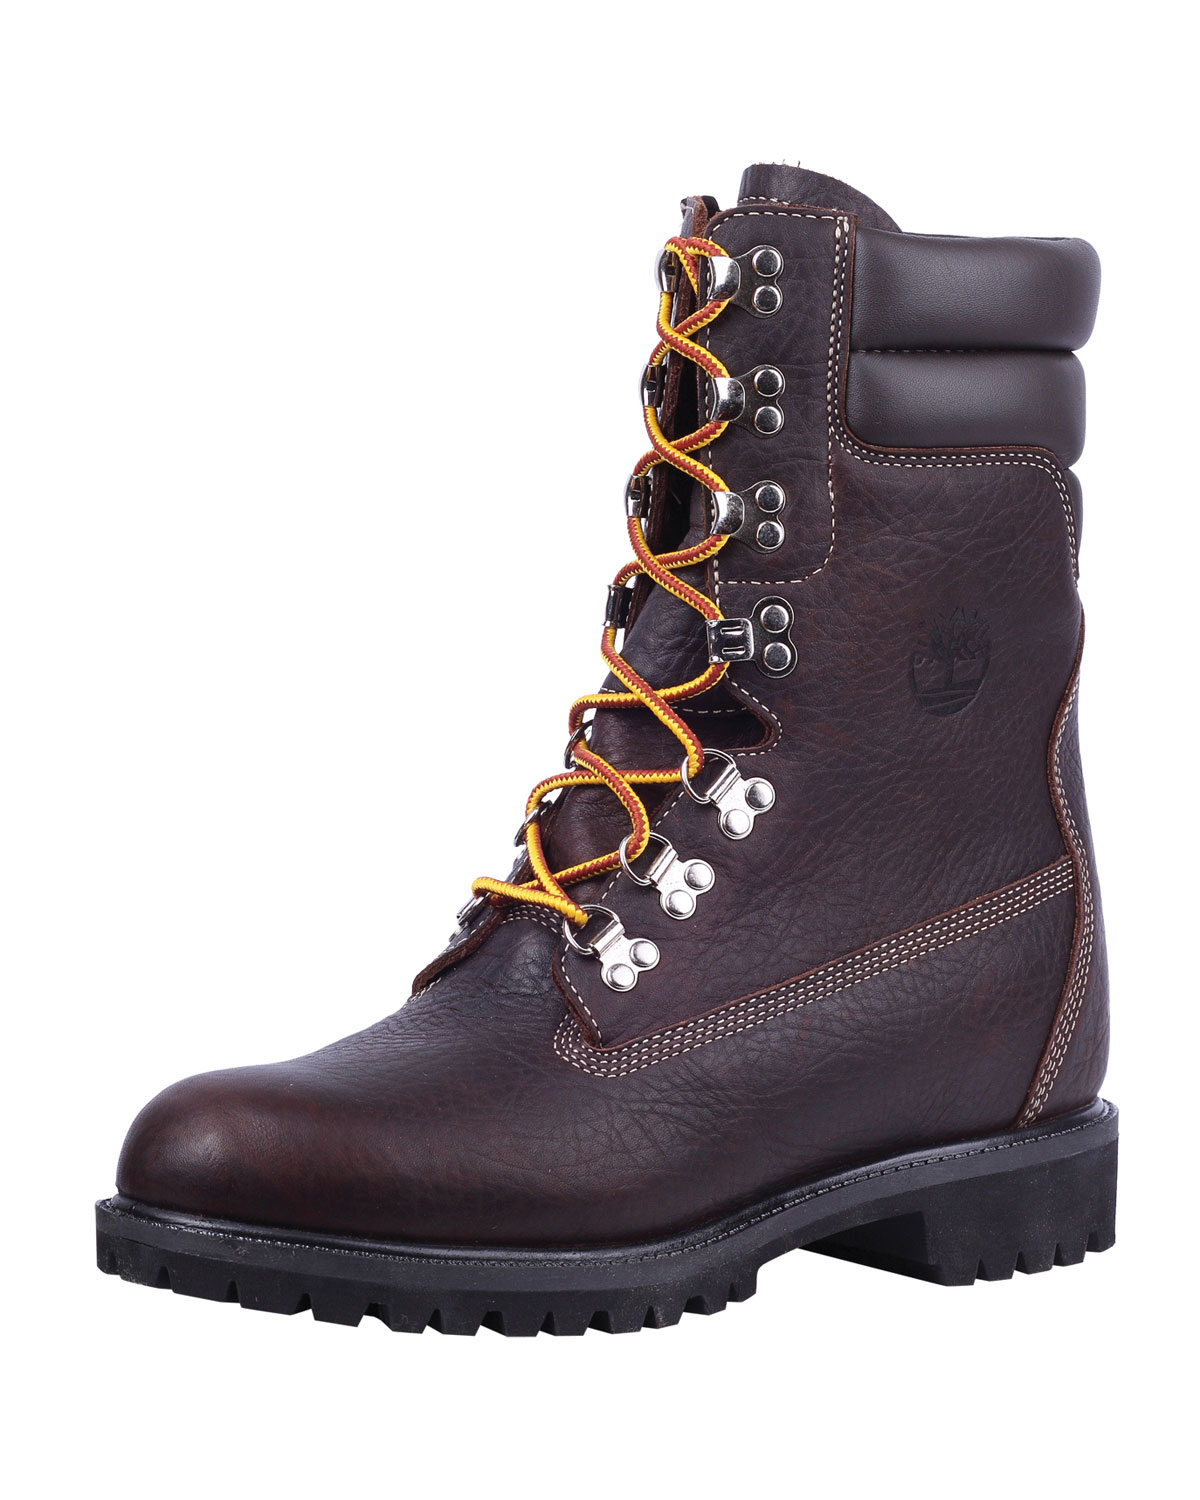 cde1be735995 Timberland Hazel Highway Winter Extreme 9